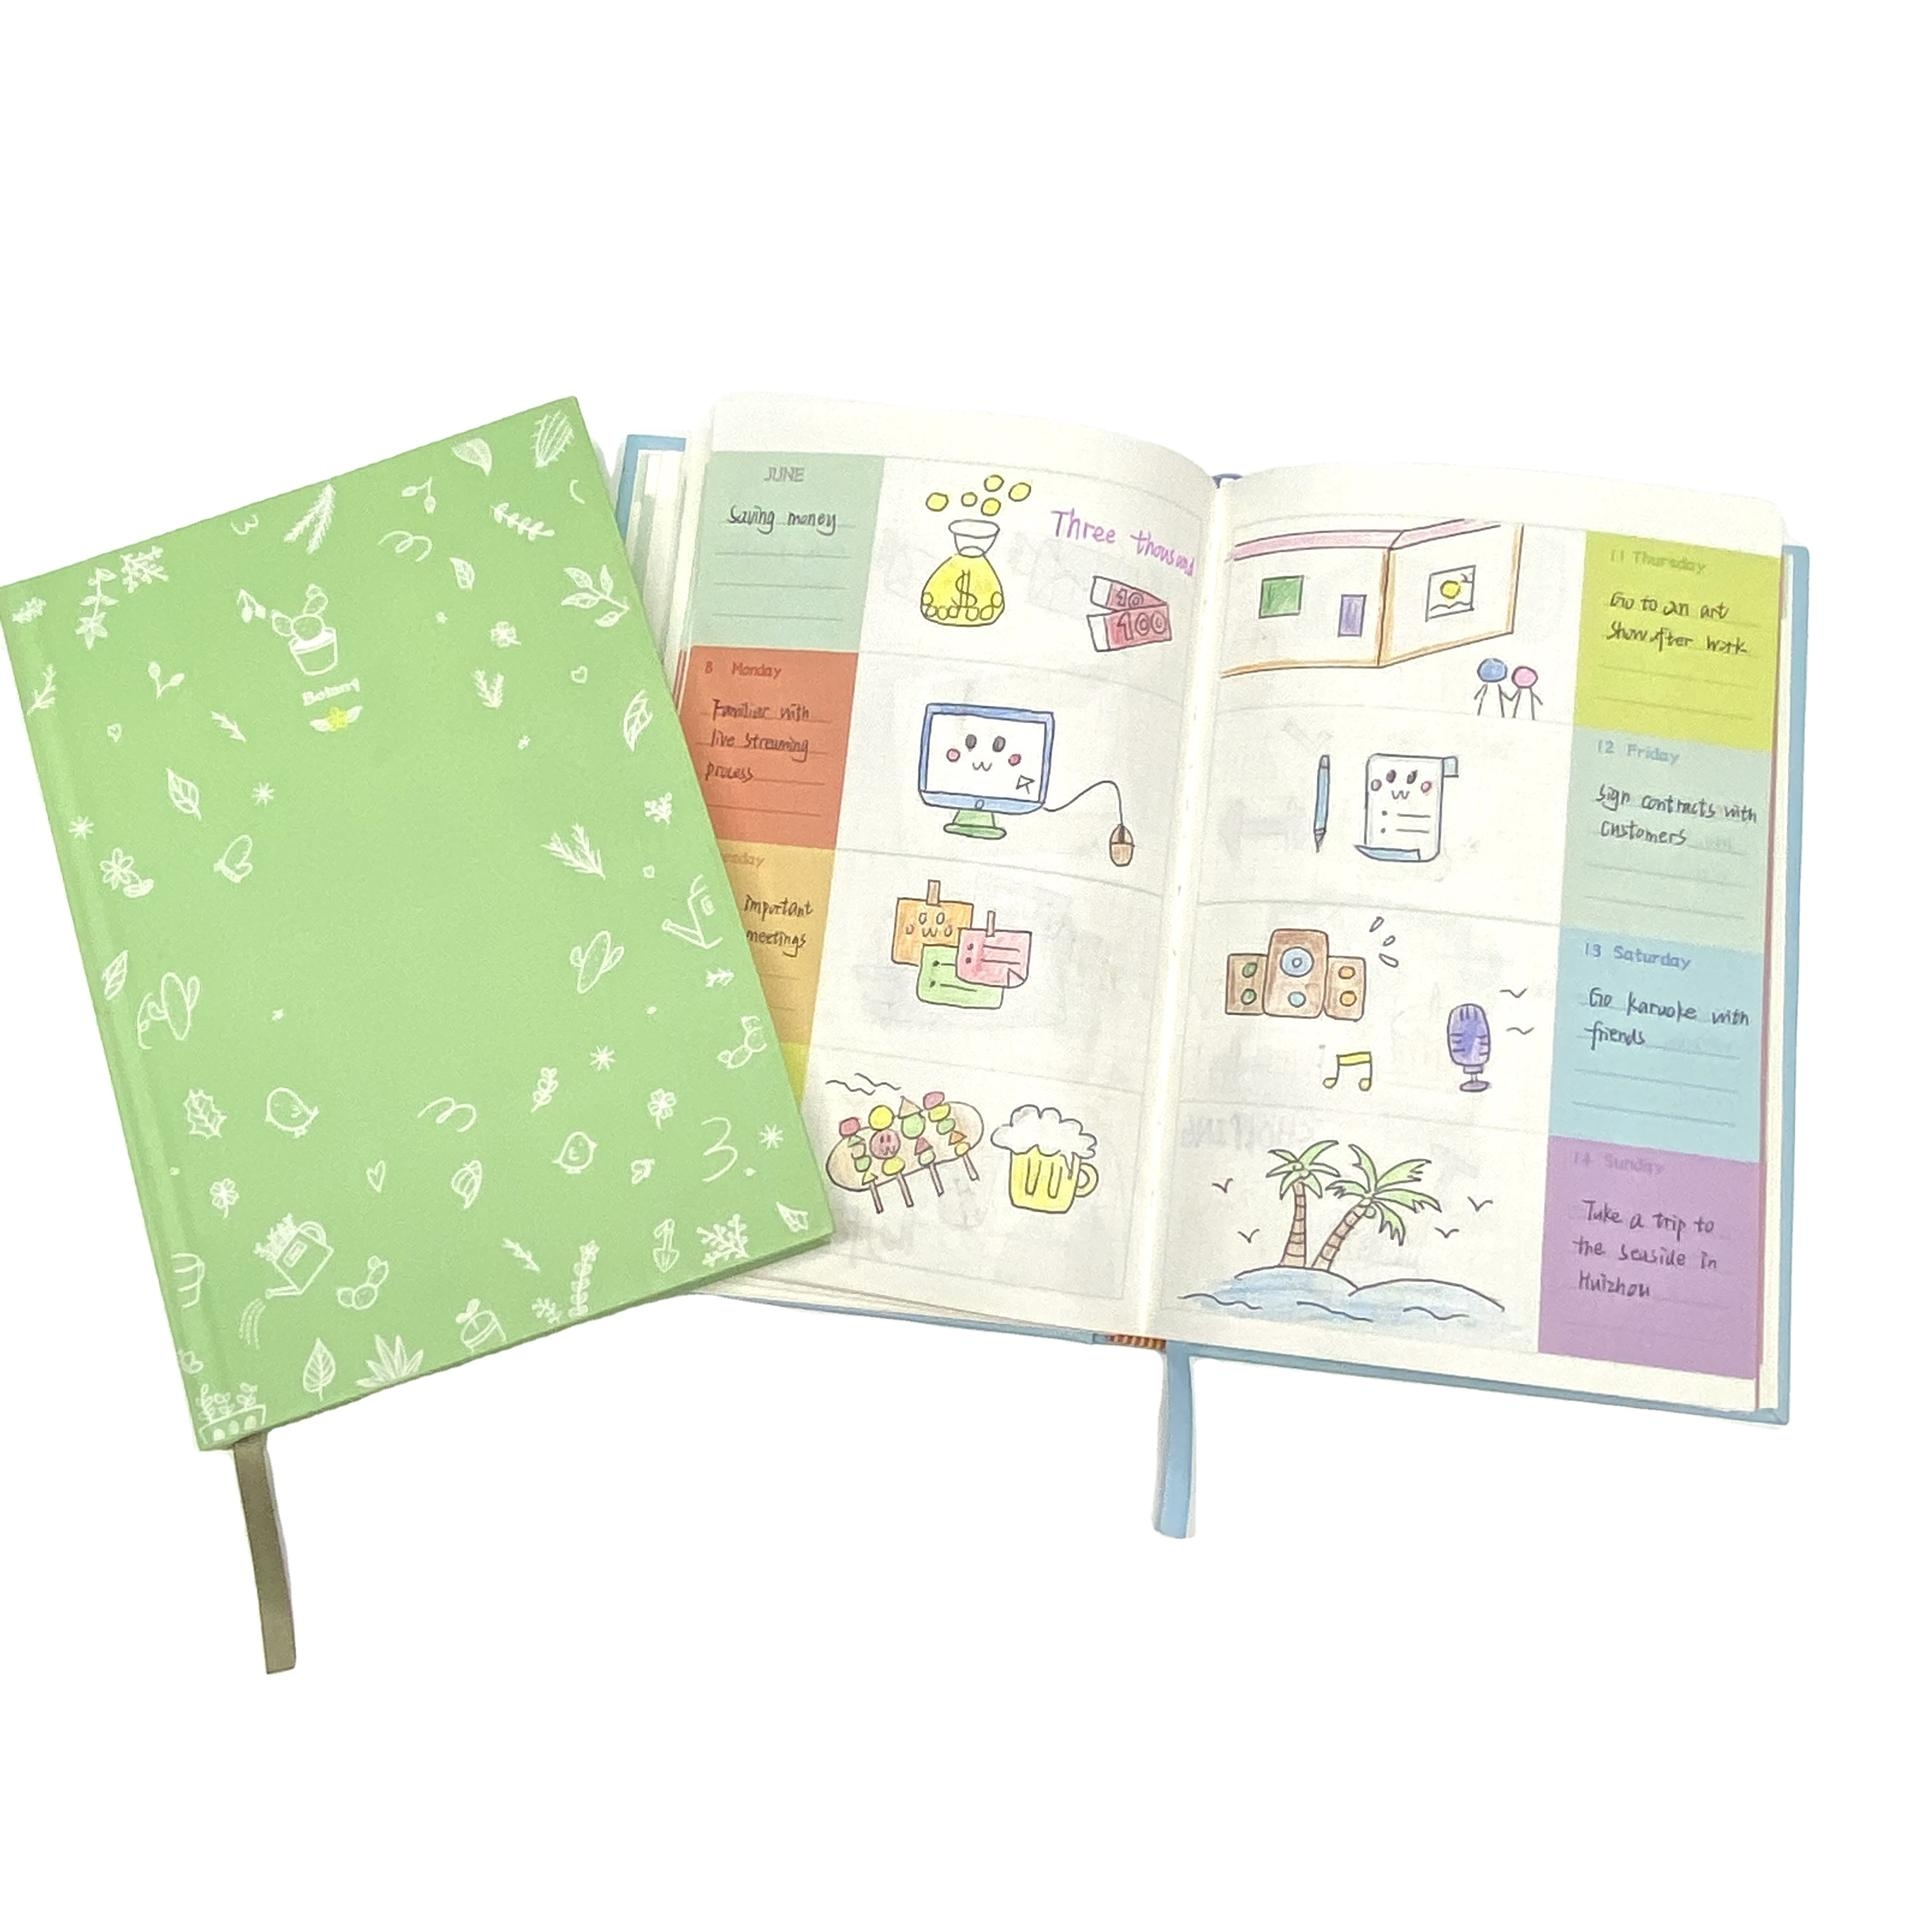 product-A5 Green Budget Planners Hardcover Printed Notebook Custom With Color Pages-Dezheng-img-1